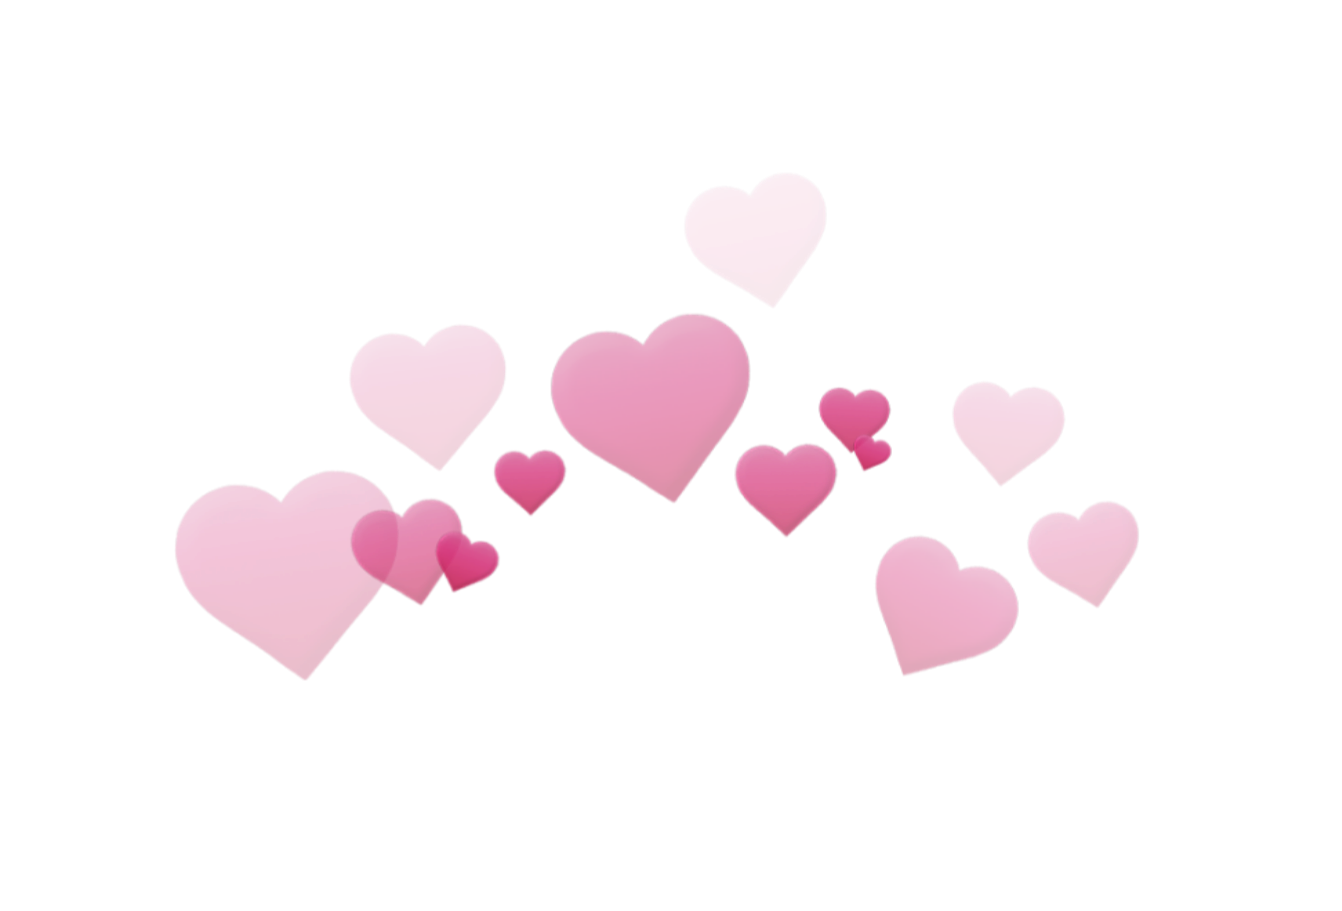 Heart with crown clipart transparent png free stock heart heartcrown crown cute pink tumblr... png free stock